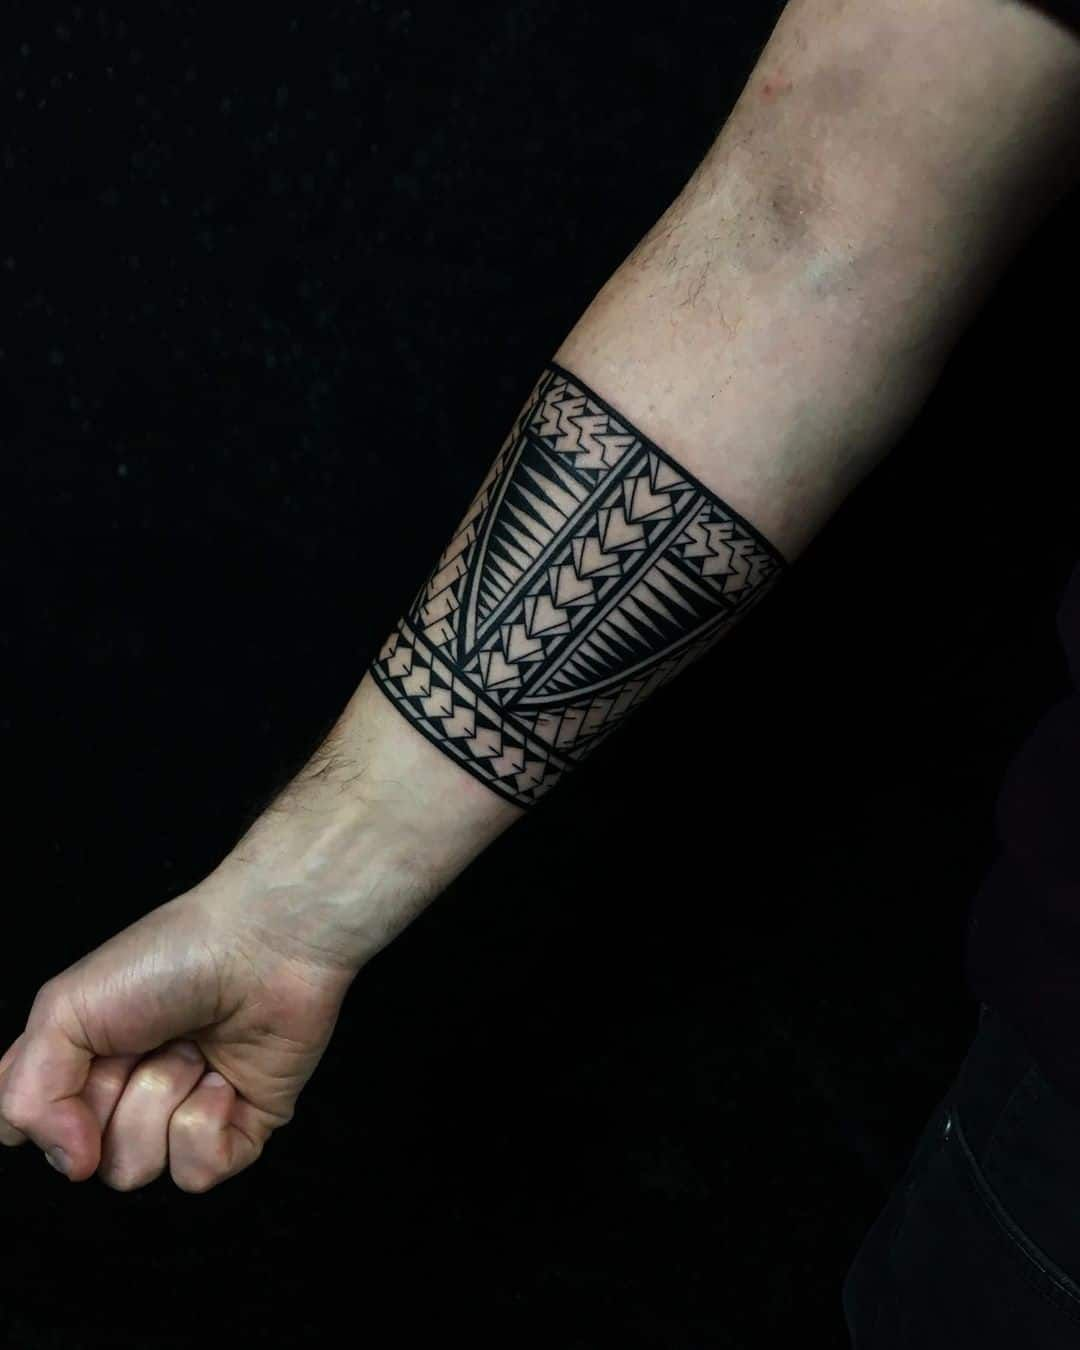 Samoan Wrist Tattoo : samoan, wrist, tattoo, Amazing, Samoan, Tattoo, Designs, Tribal, Armband, Tattoo,